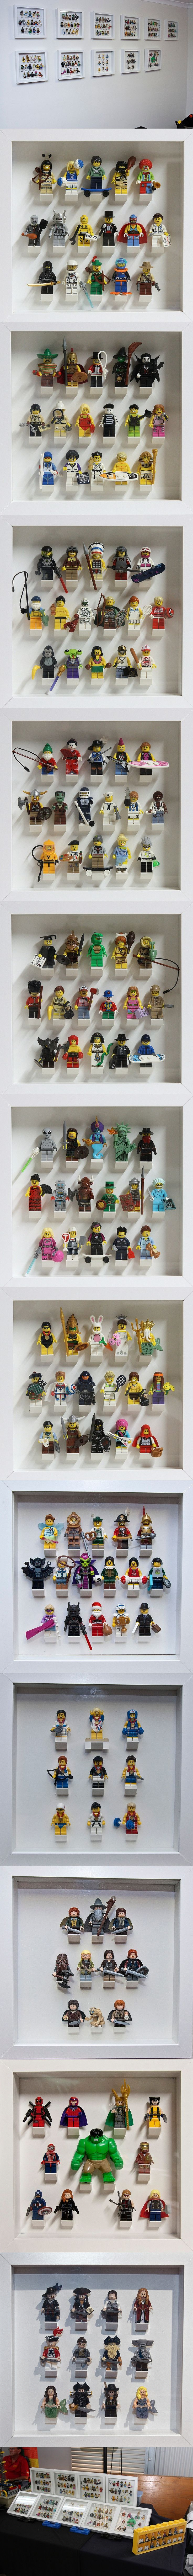 Lego Collectible Minifigures in IKEA Ribba Frames #LEGO #Minifigures #IKEA